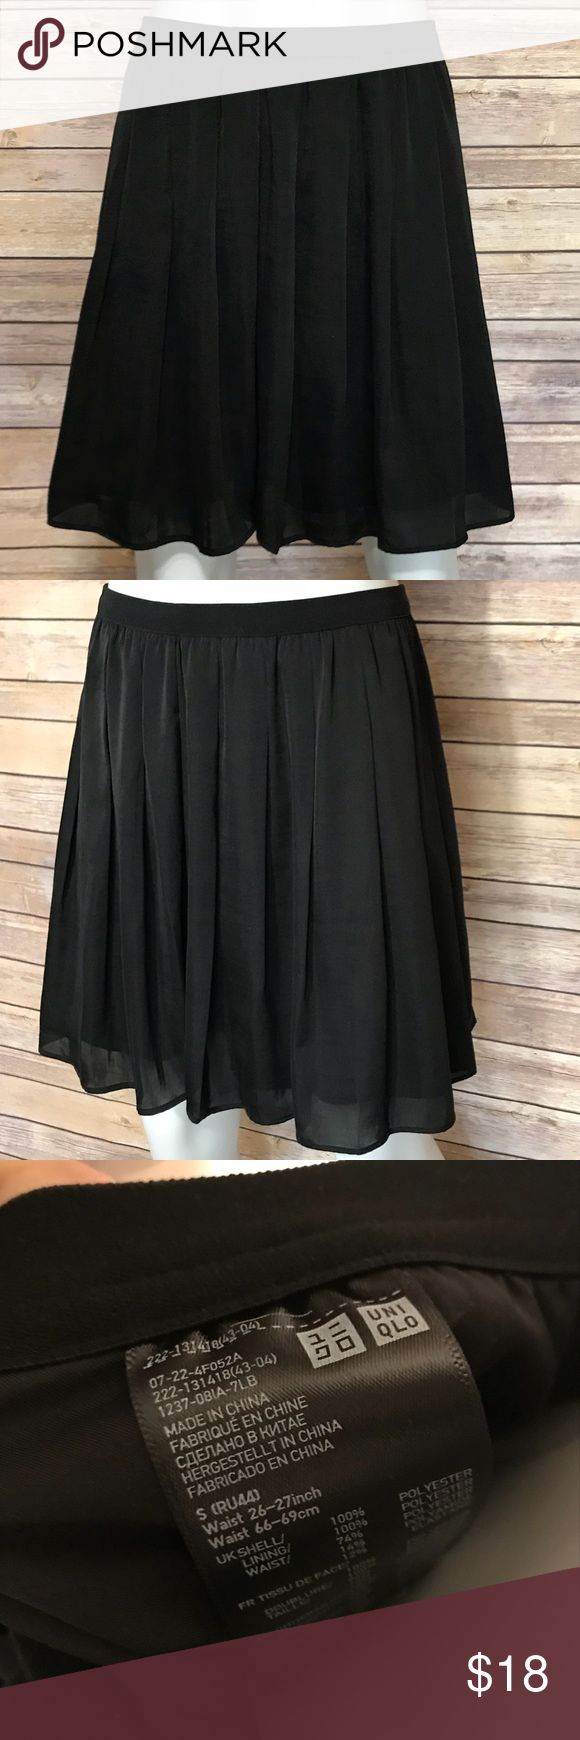 {uniqlo} black circle skirt Beautiful, soft pleated skirt from Uniqlo. Layered, versatile, neutral skirt for many occasions. Uniqlo Skirts Circle & Skater